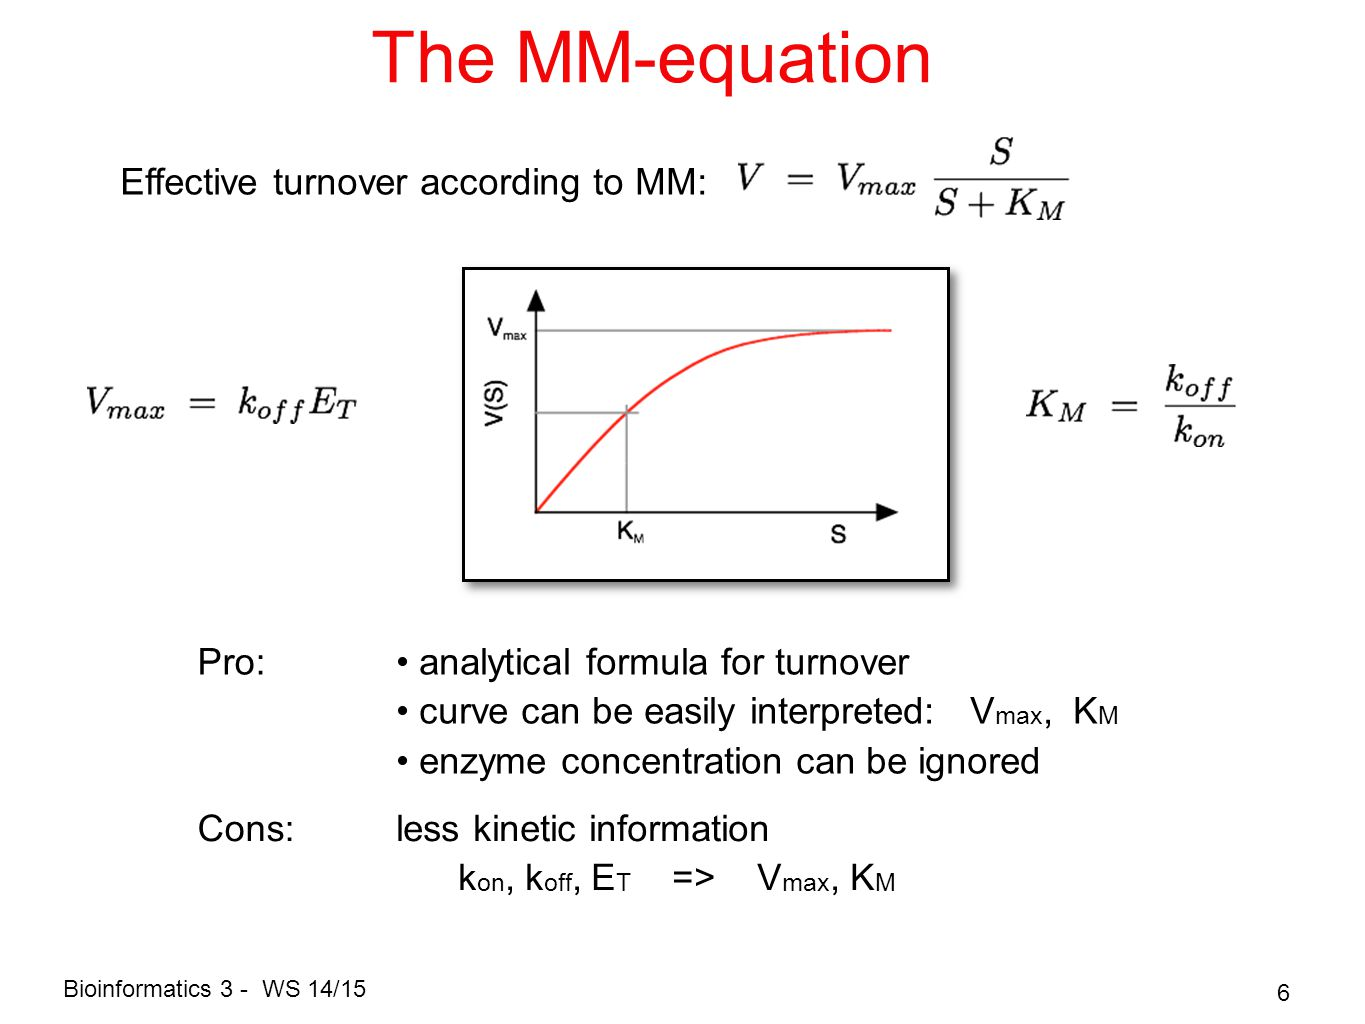 Bioinformatics 3 - WS 14/15 6 The MM-equation Effective turnover according to MM: Pro: analytical formula for turnover curve can be easily interpreted: V max, K M enzyme concentration can be ignored Cons:less kinetic information k on, k off, E T => V max, K M